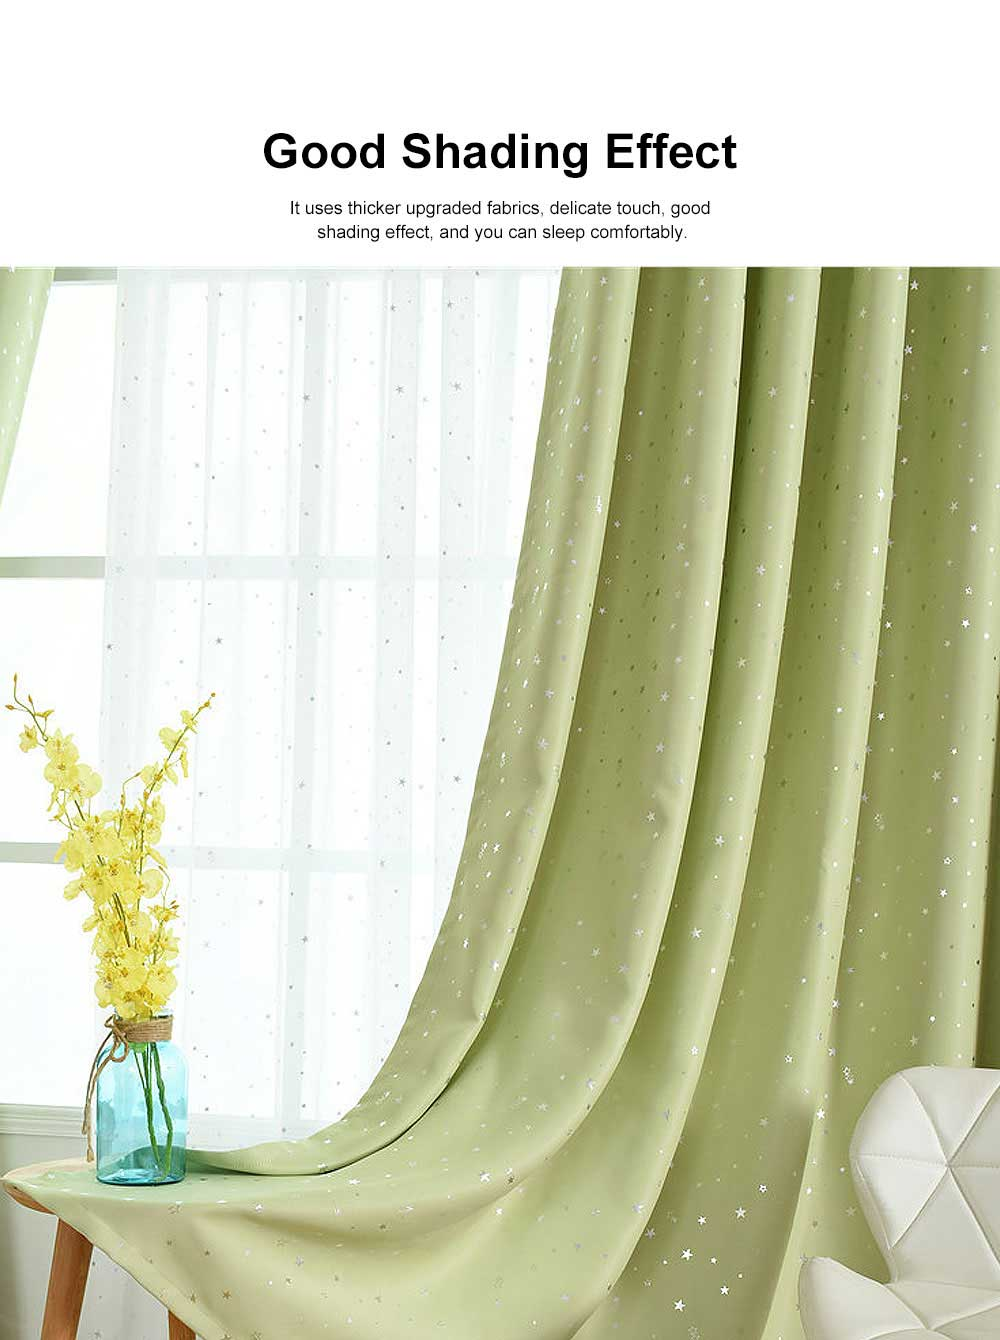 Star Hot Silver Curtain, Multicolor Curtains for Hotel Engineering, Living Room, Bedroom, High-quality Flannel Curtain 5